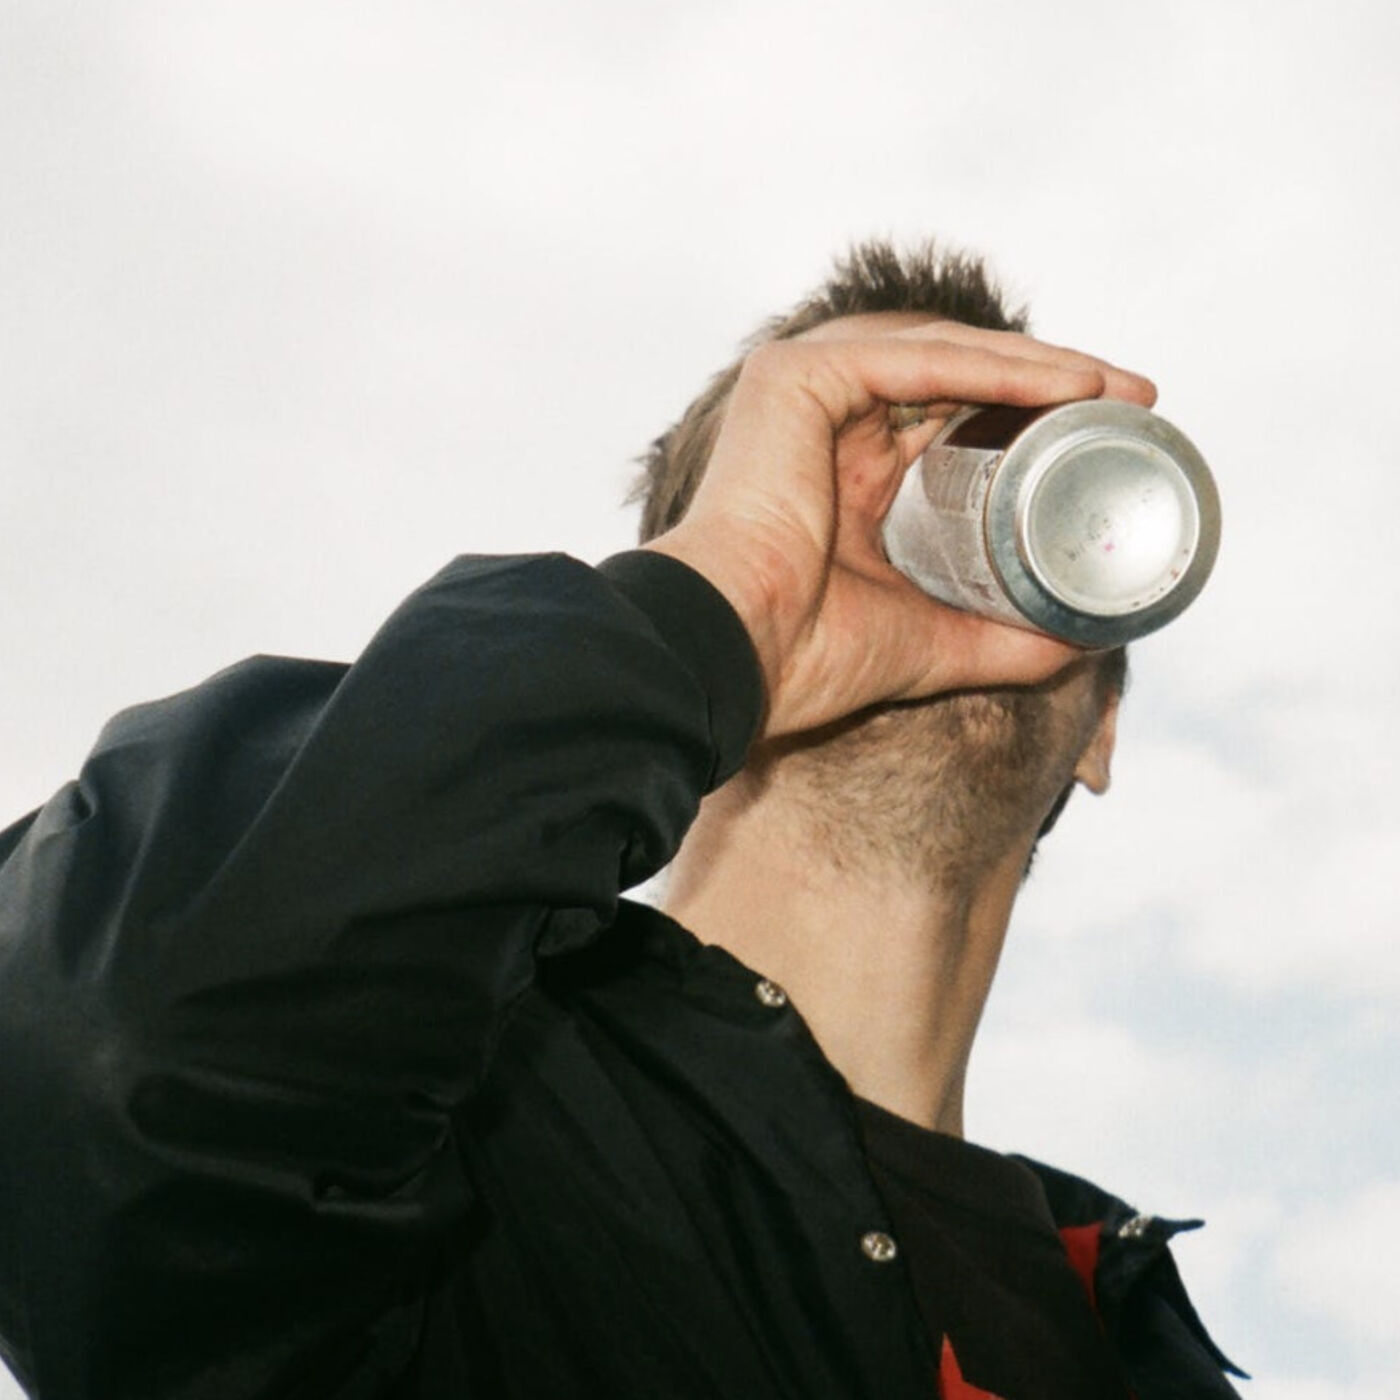 Drinking from a Can